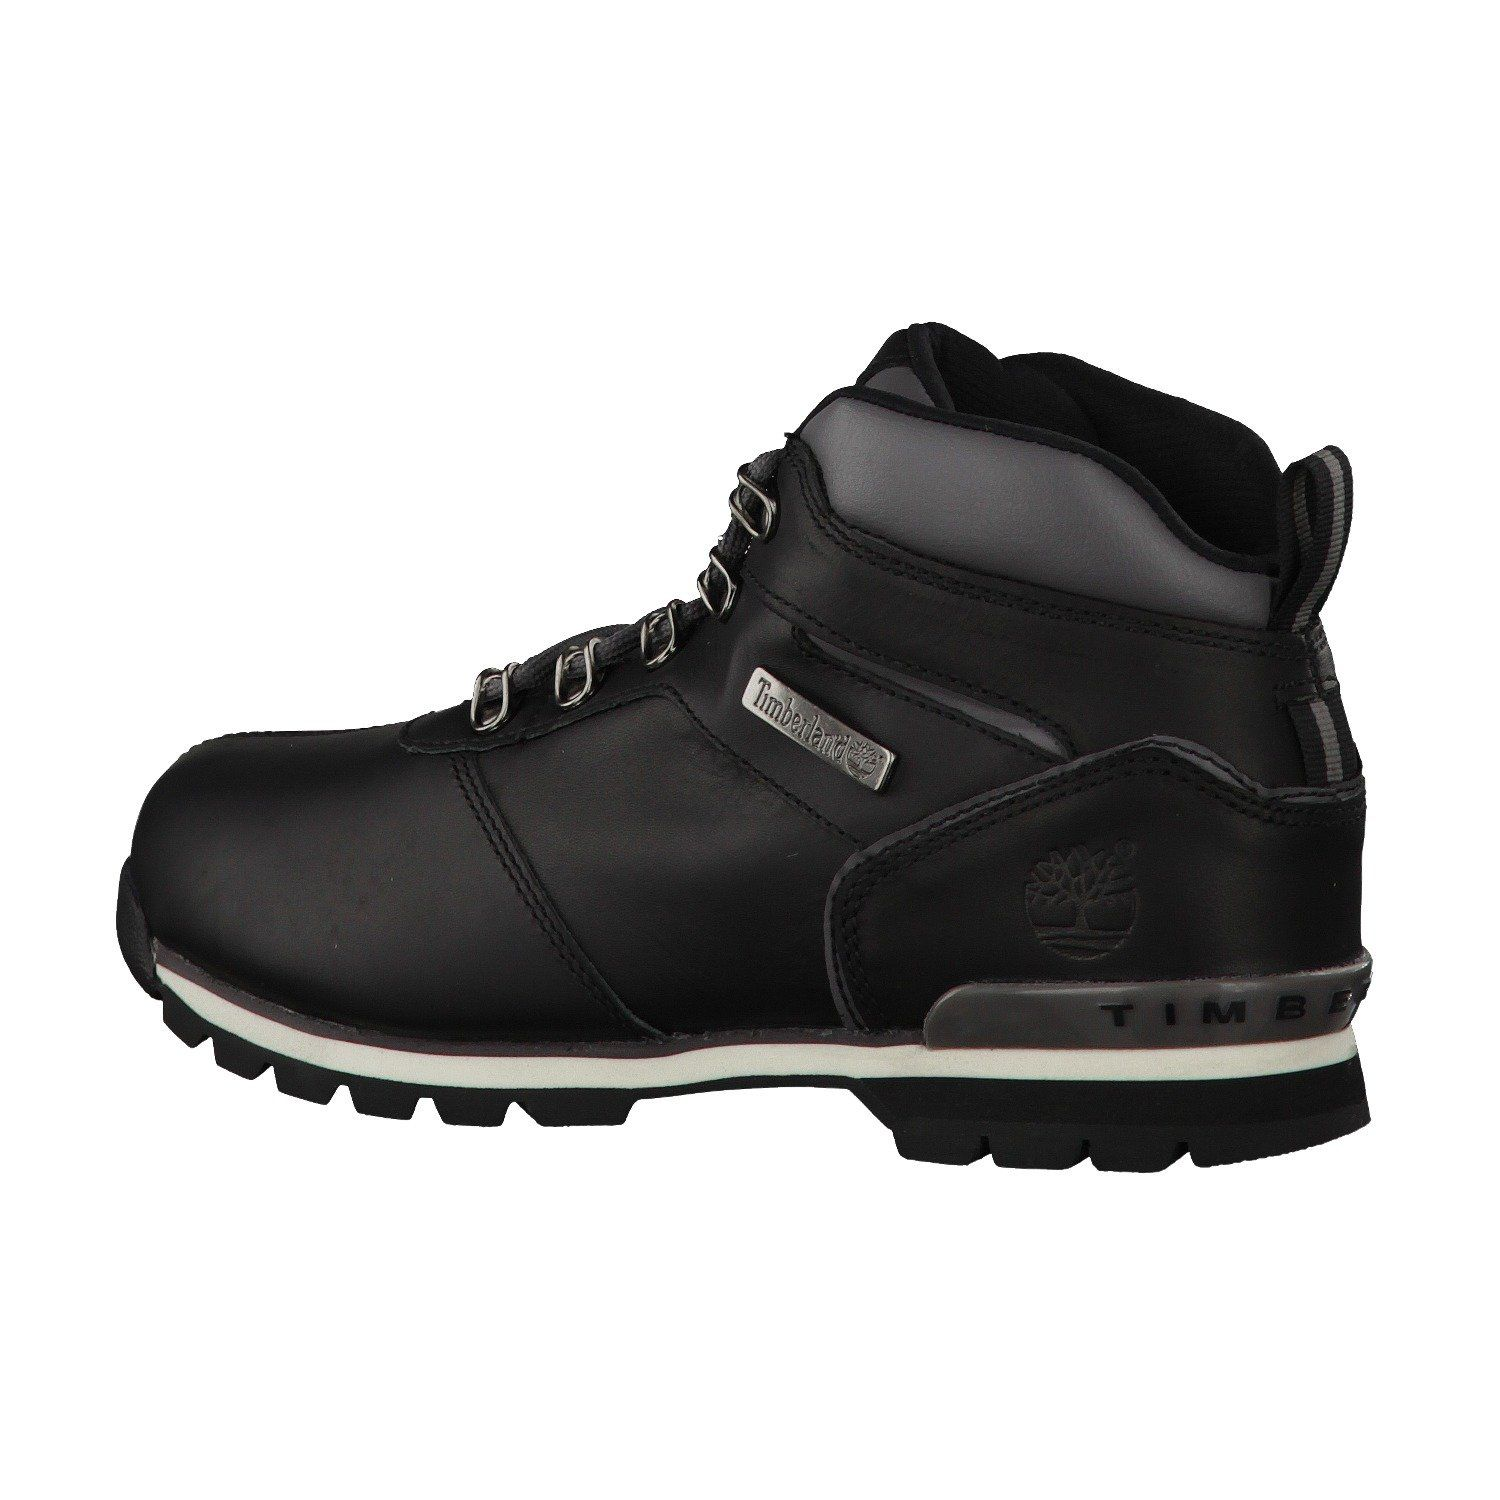 16af71d1511 TIMBERLAND TIMBERLAND man pedolo 6669A size 41.5 BLACK ** You can ...